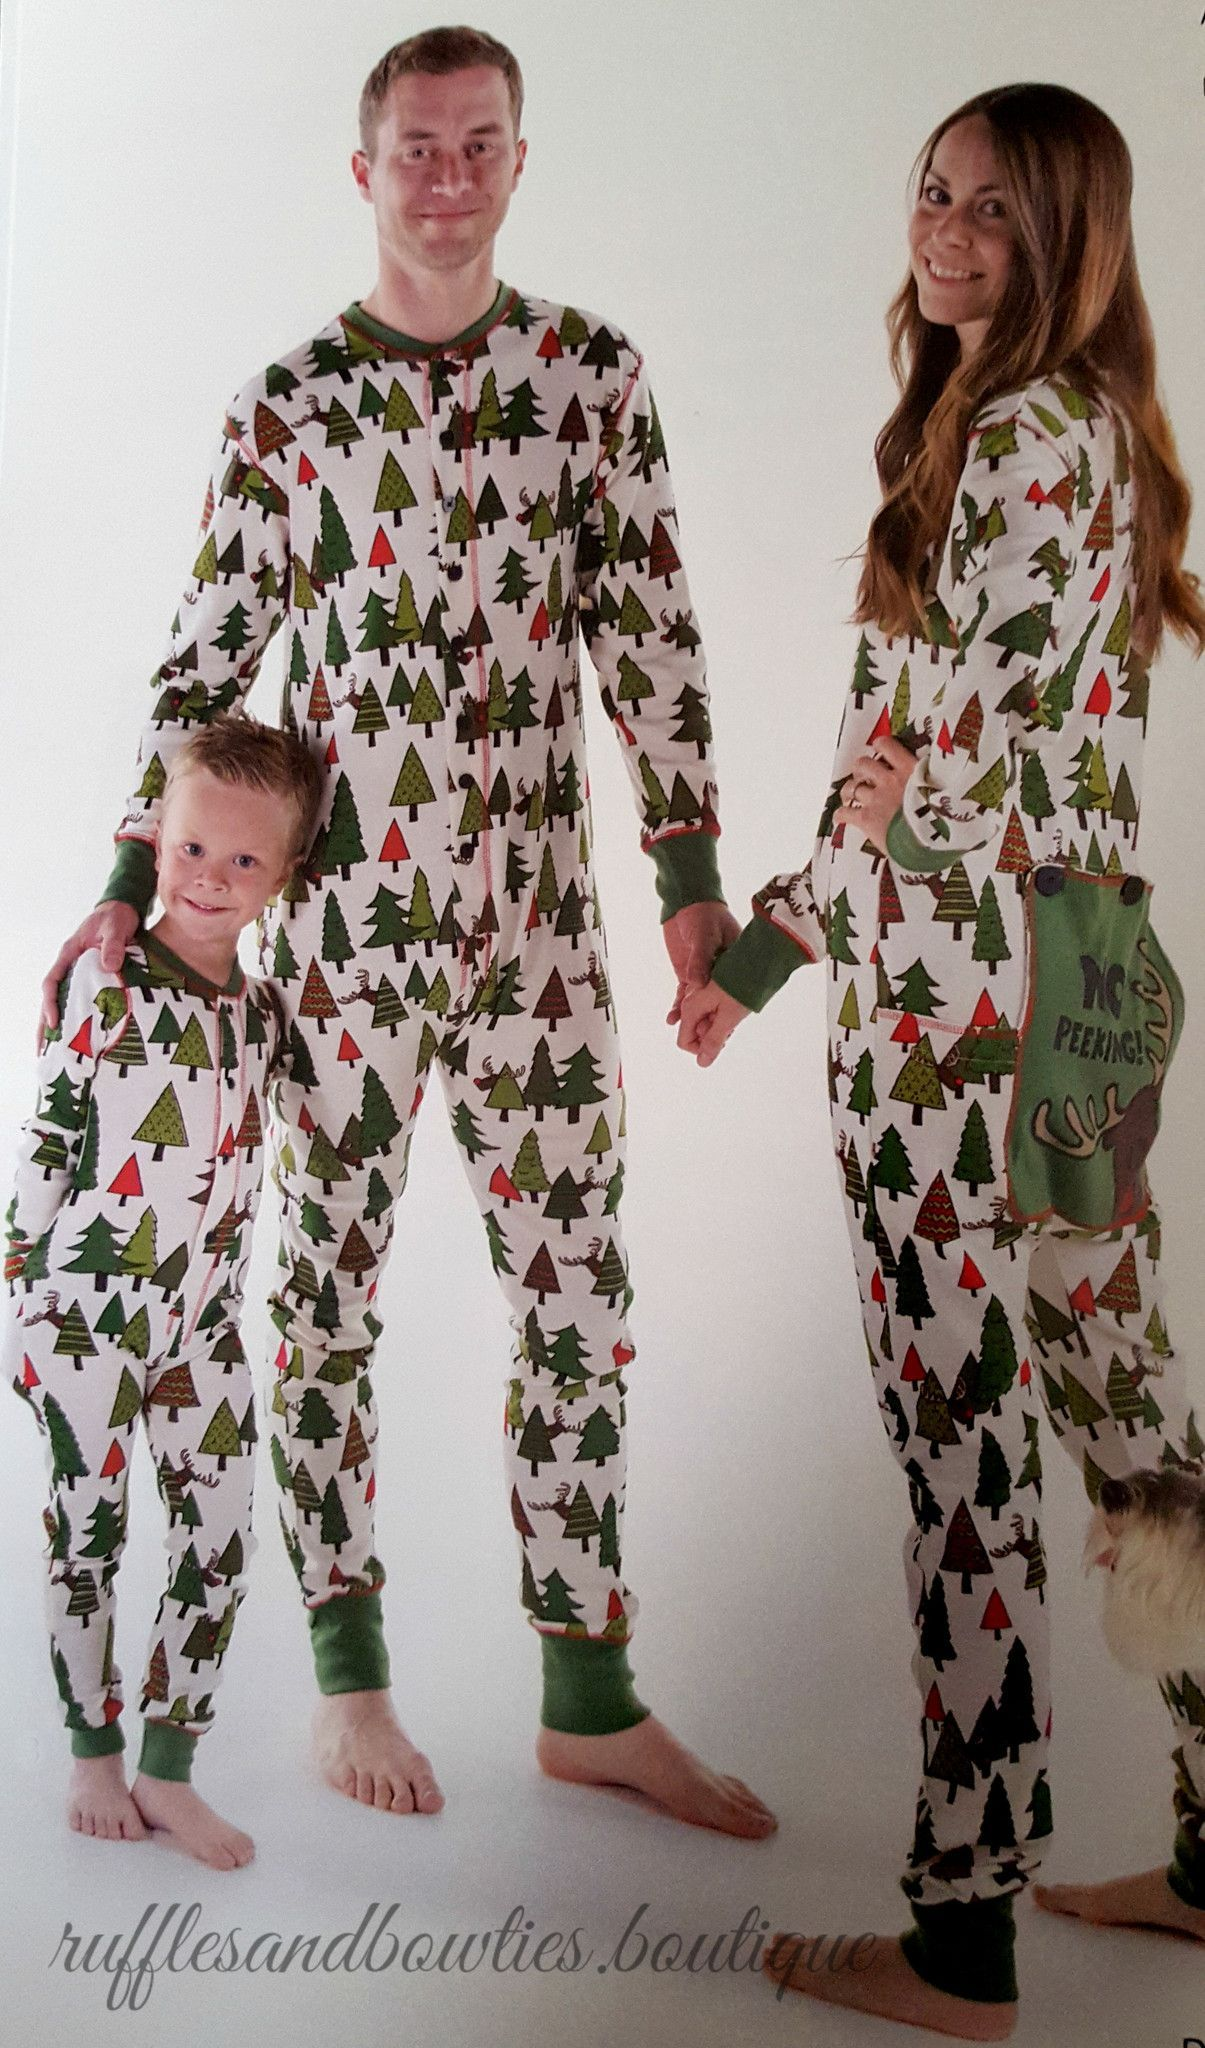 ddc0dd3091 PRE ORDER - NEW THIS SEASON - NO PEEKING - Family Matching Flapjack  Christmas Pj s